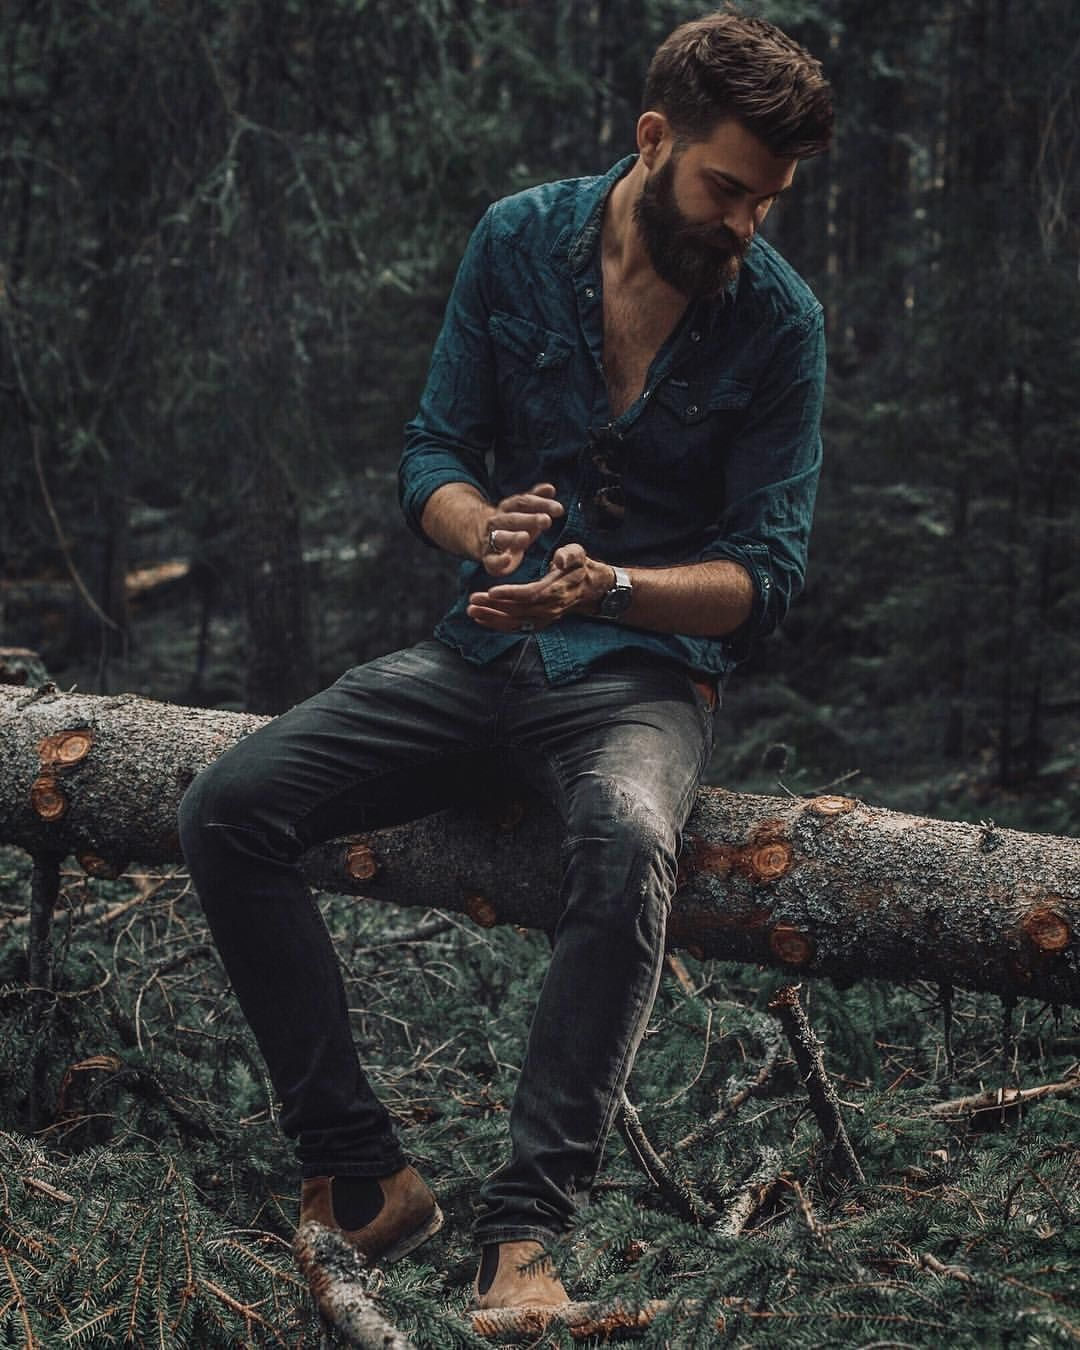 Pin By Chelle Belle On Cabin Crazy In 2020 Portrait Photography Men Mens Photoshoot Poses Outdoor Portrait Photography